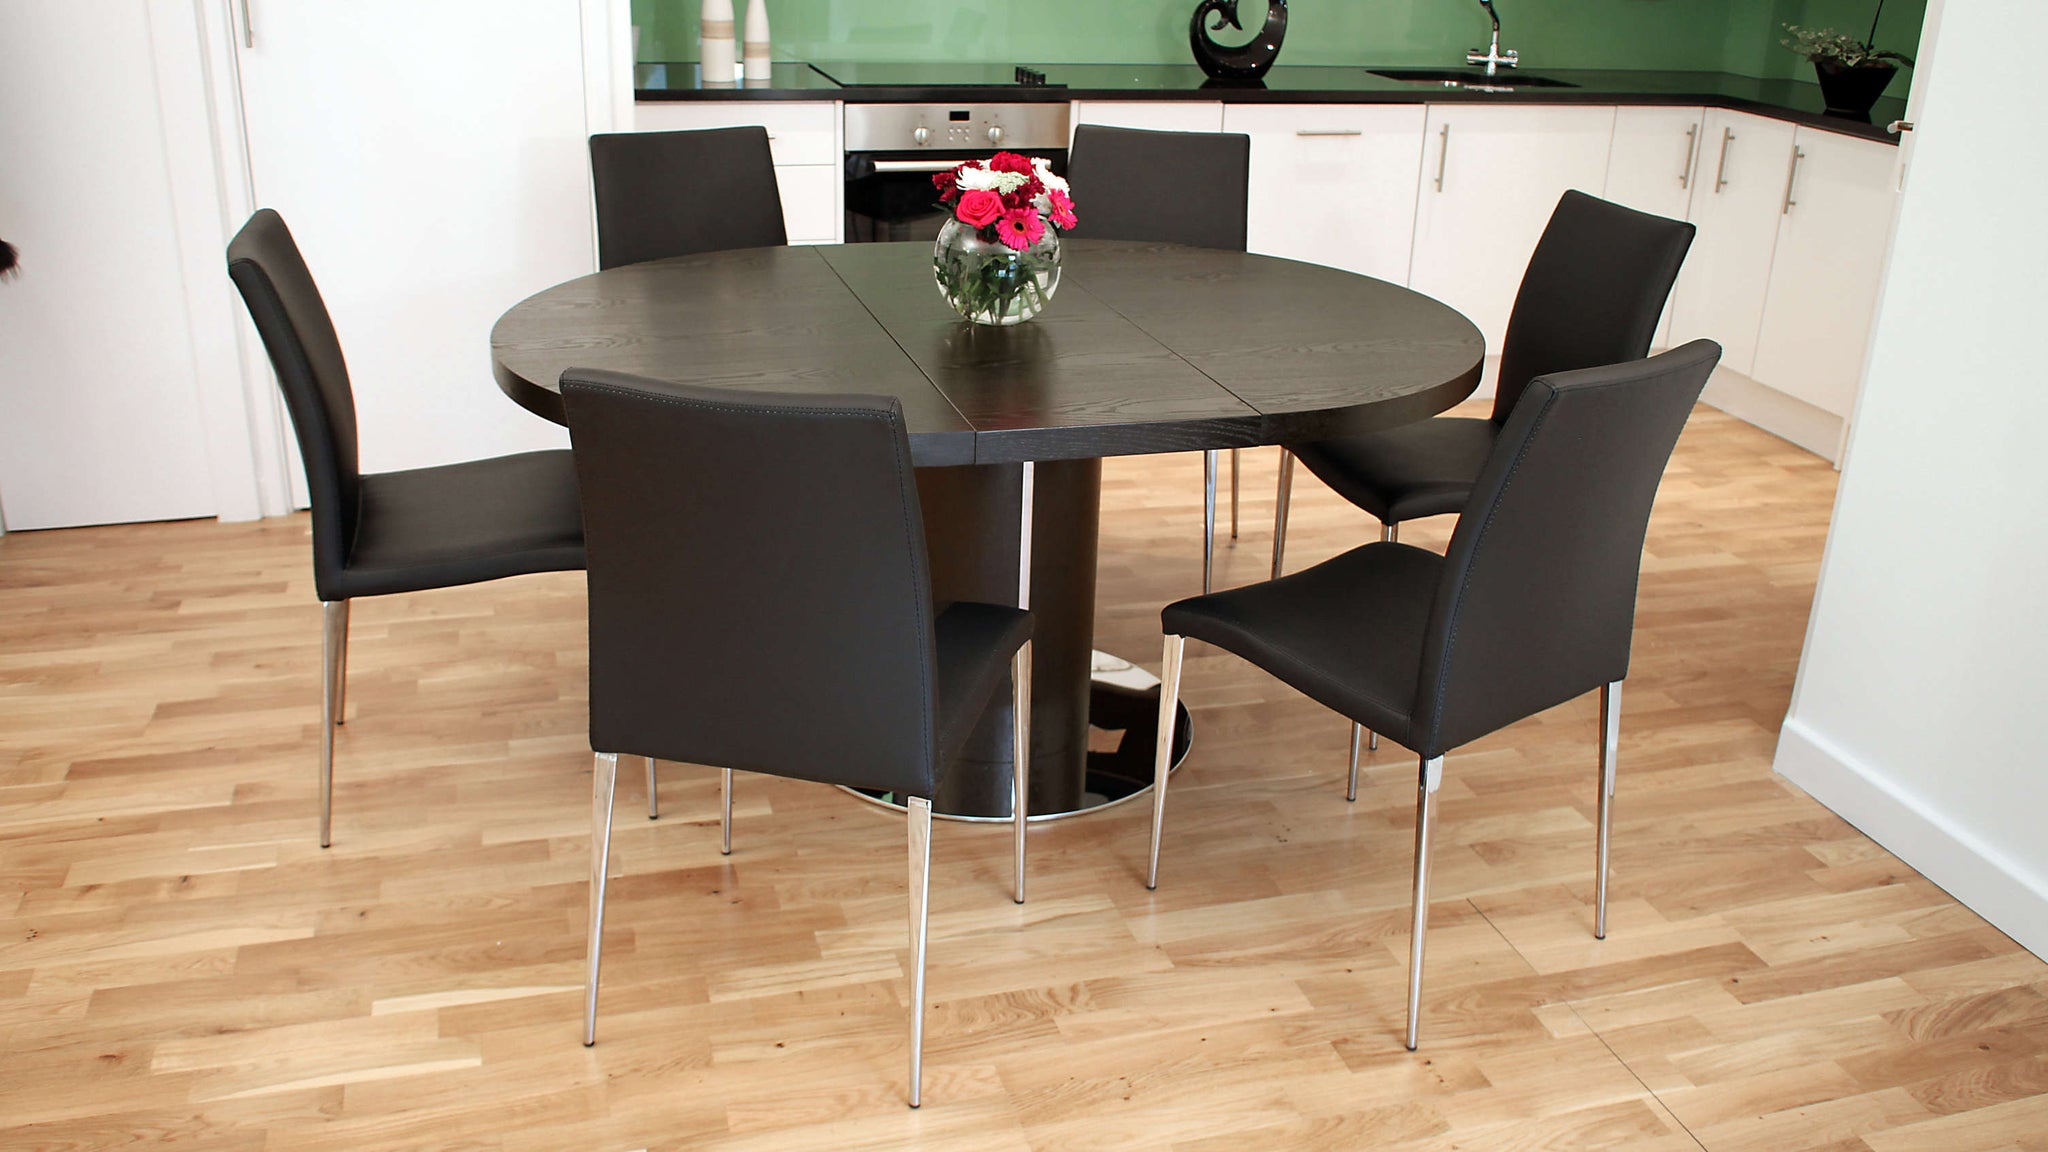 Modern Dark Wood Wenge Extending Dining Table and Black Faux Leather Dining Chairs